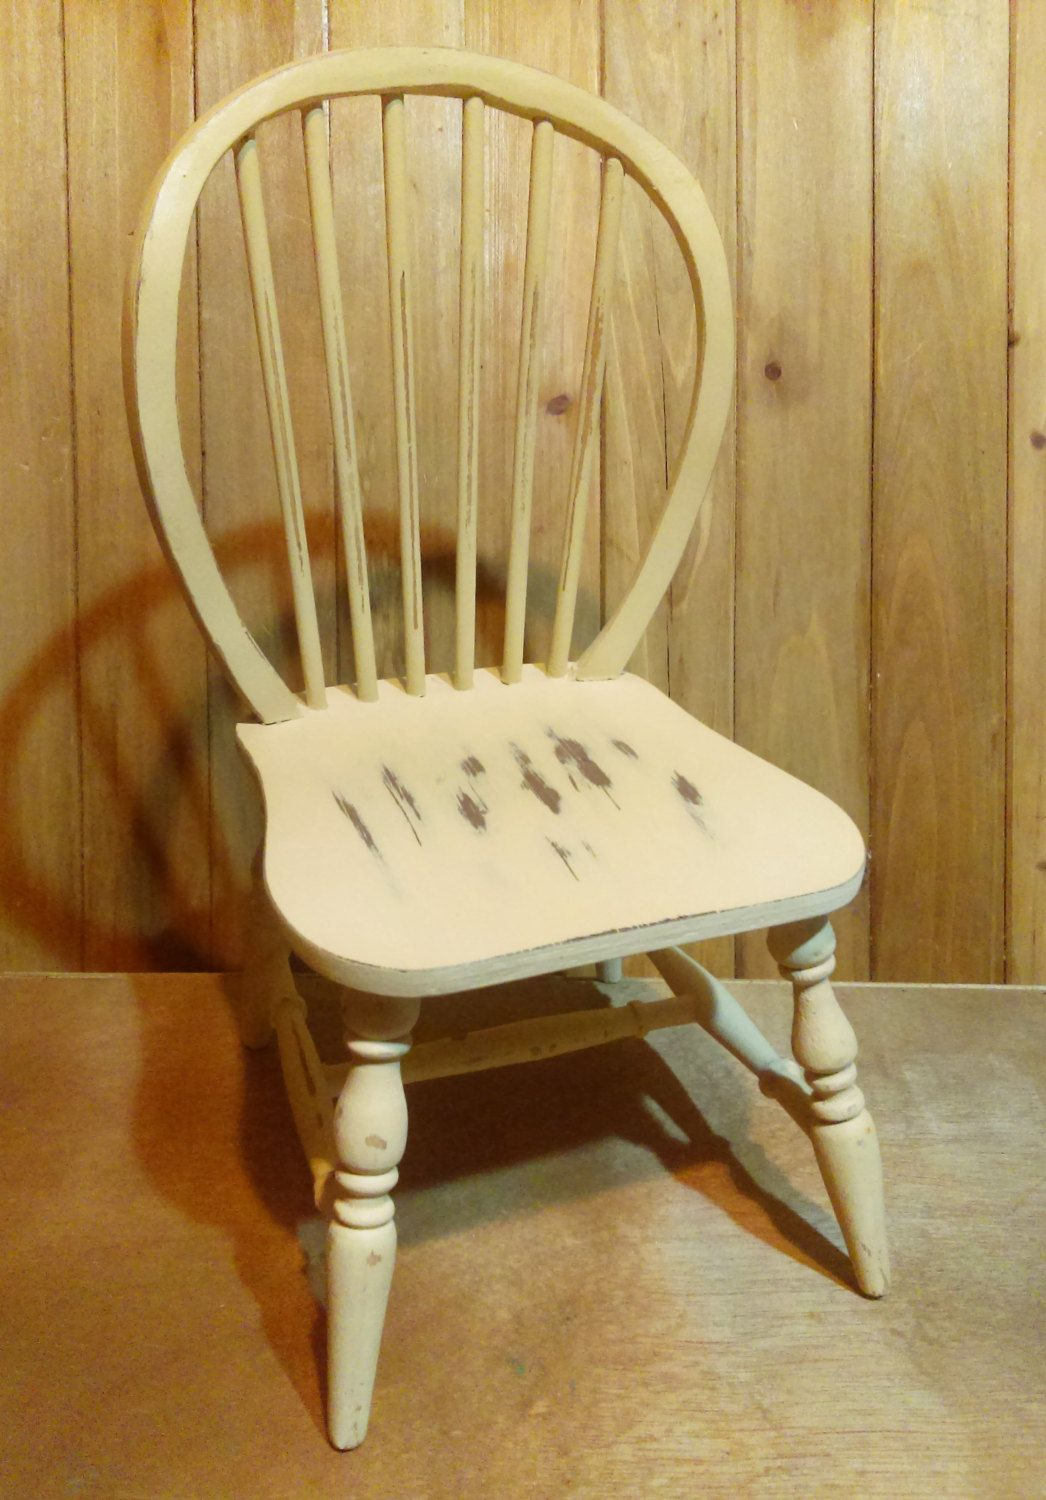 Yellow shabby chic furniture - Vintage Yellow Wooden Doll Chair Shabby Chic Handmade Distressed Chair Children S Toy Photography Prop Doll Furniture Christmas Gift